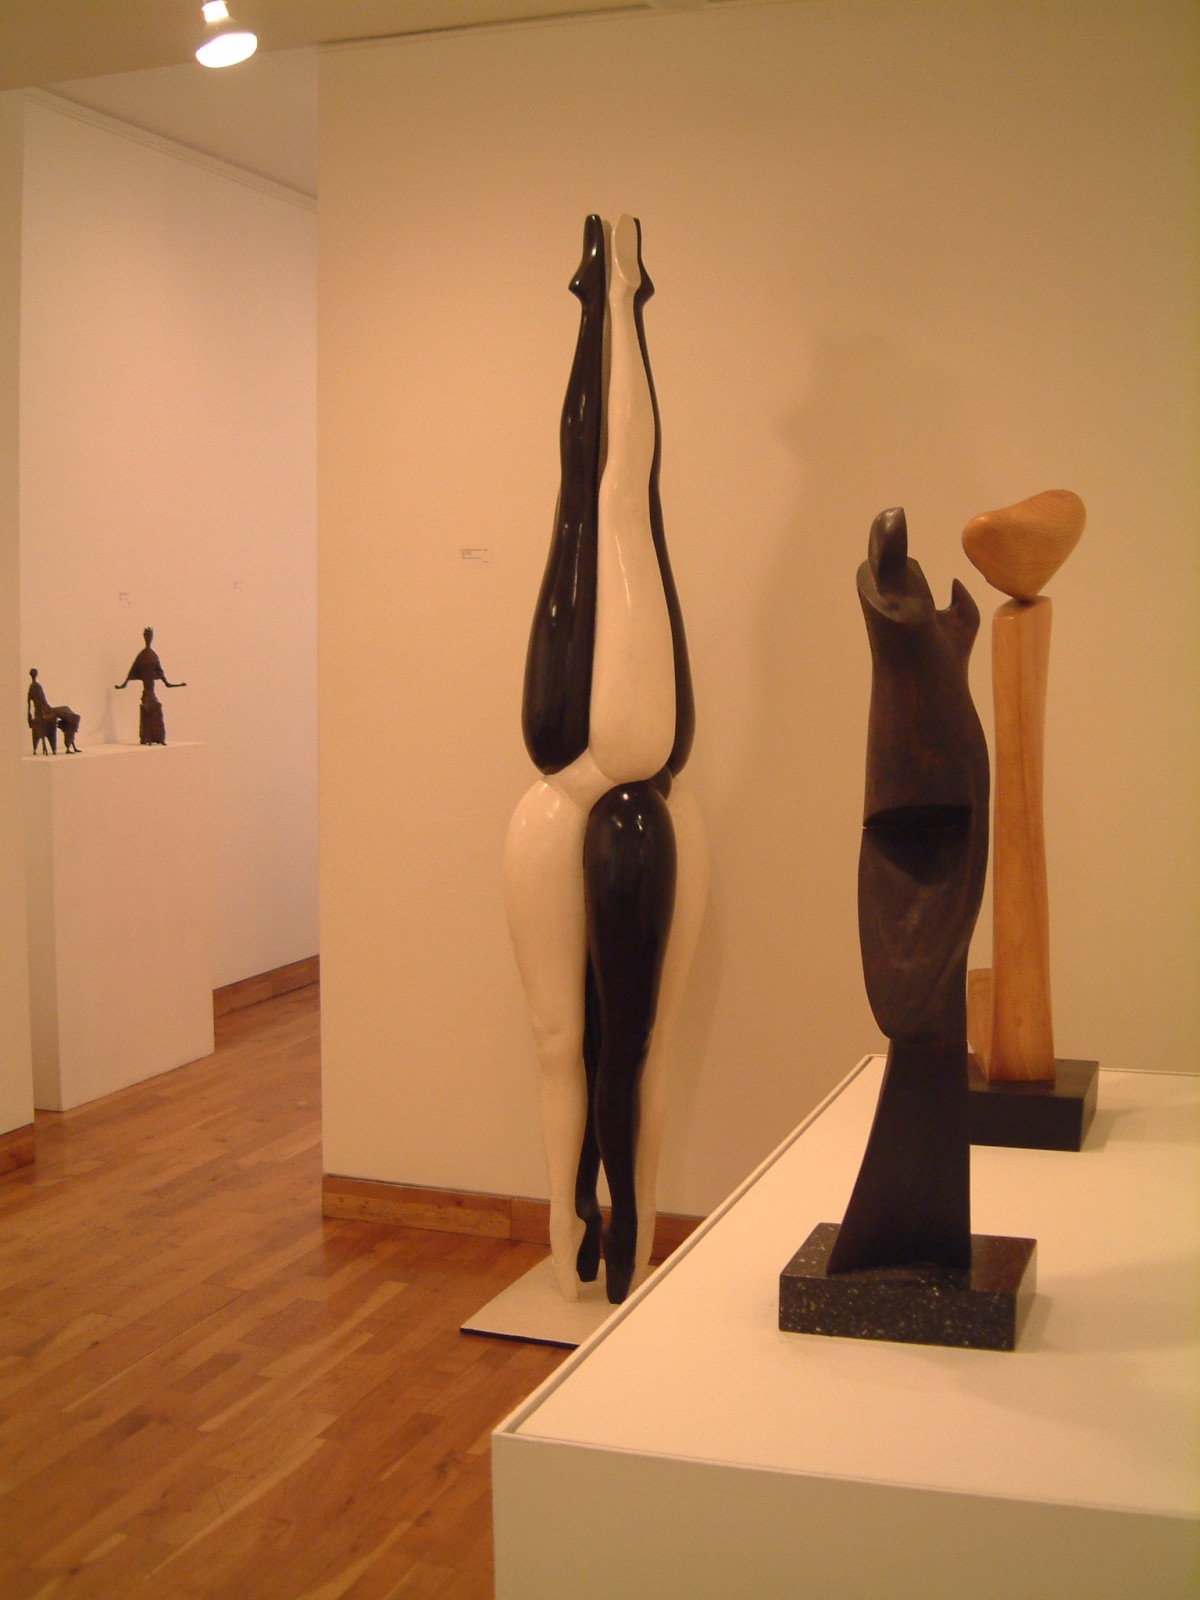 "<span class=""link fancybox-details-link""><a href=""/exhibitions/113/works/image_standalone482/"">View Detail Page</a></span><p>F. E. MCWILLIAM 